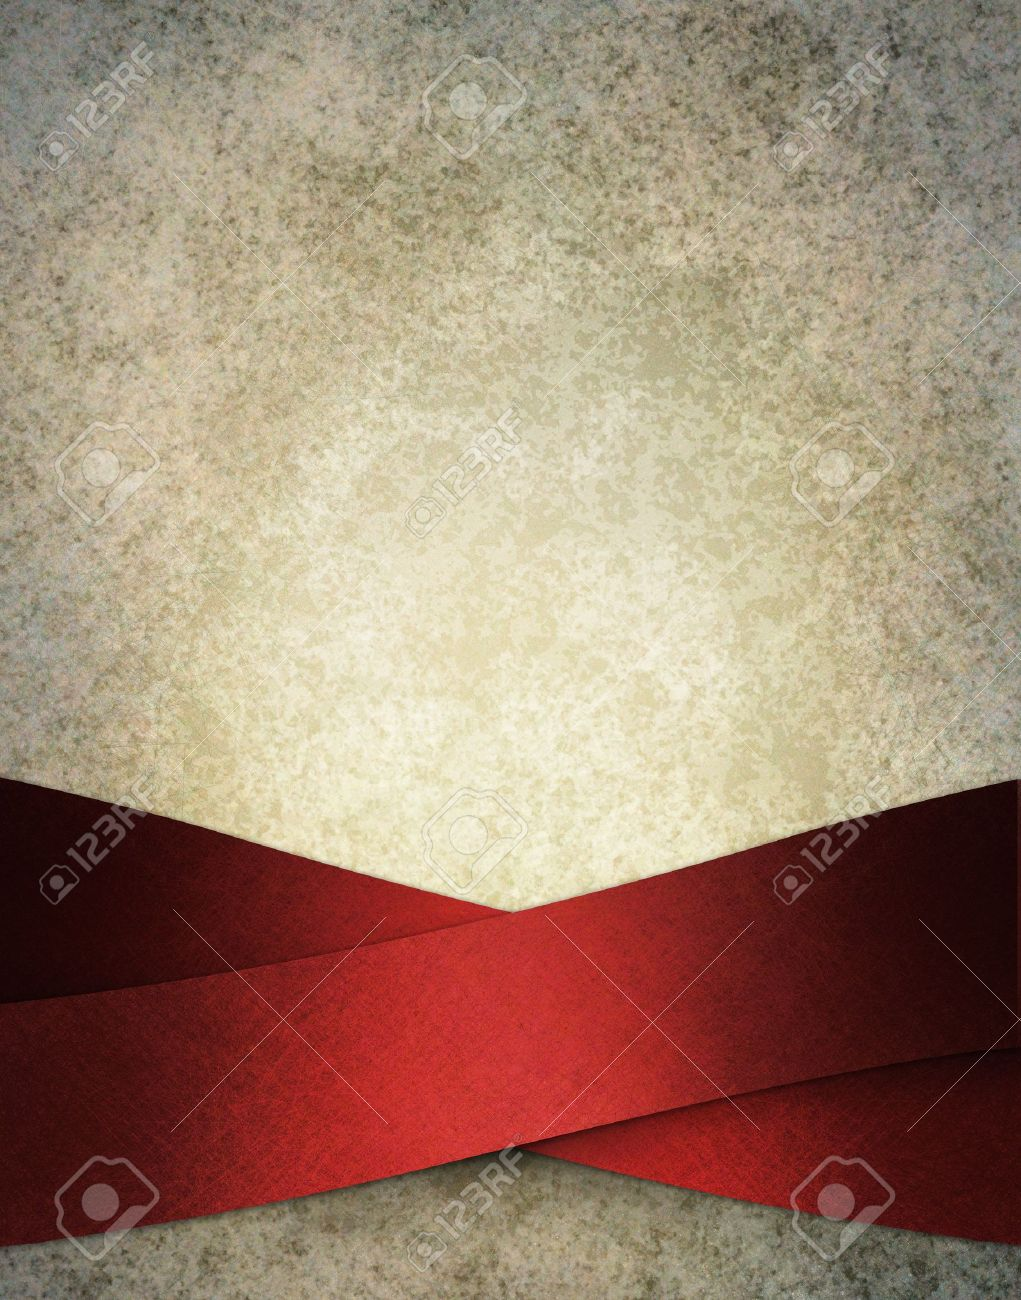 Banco De Imagens   Snowy Frosty White Background Illustration With Luxurious  Elegant Red Ribbon Stripes In Artsy Layout Design On Border Of Frame With  Copy ...